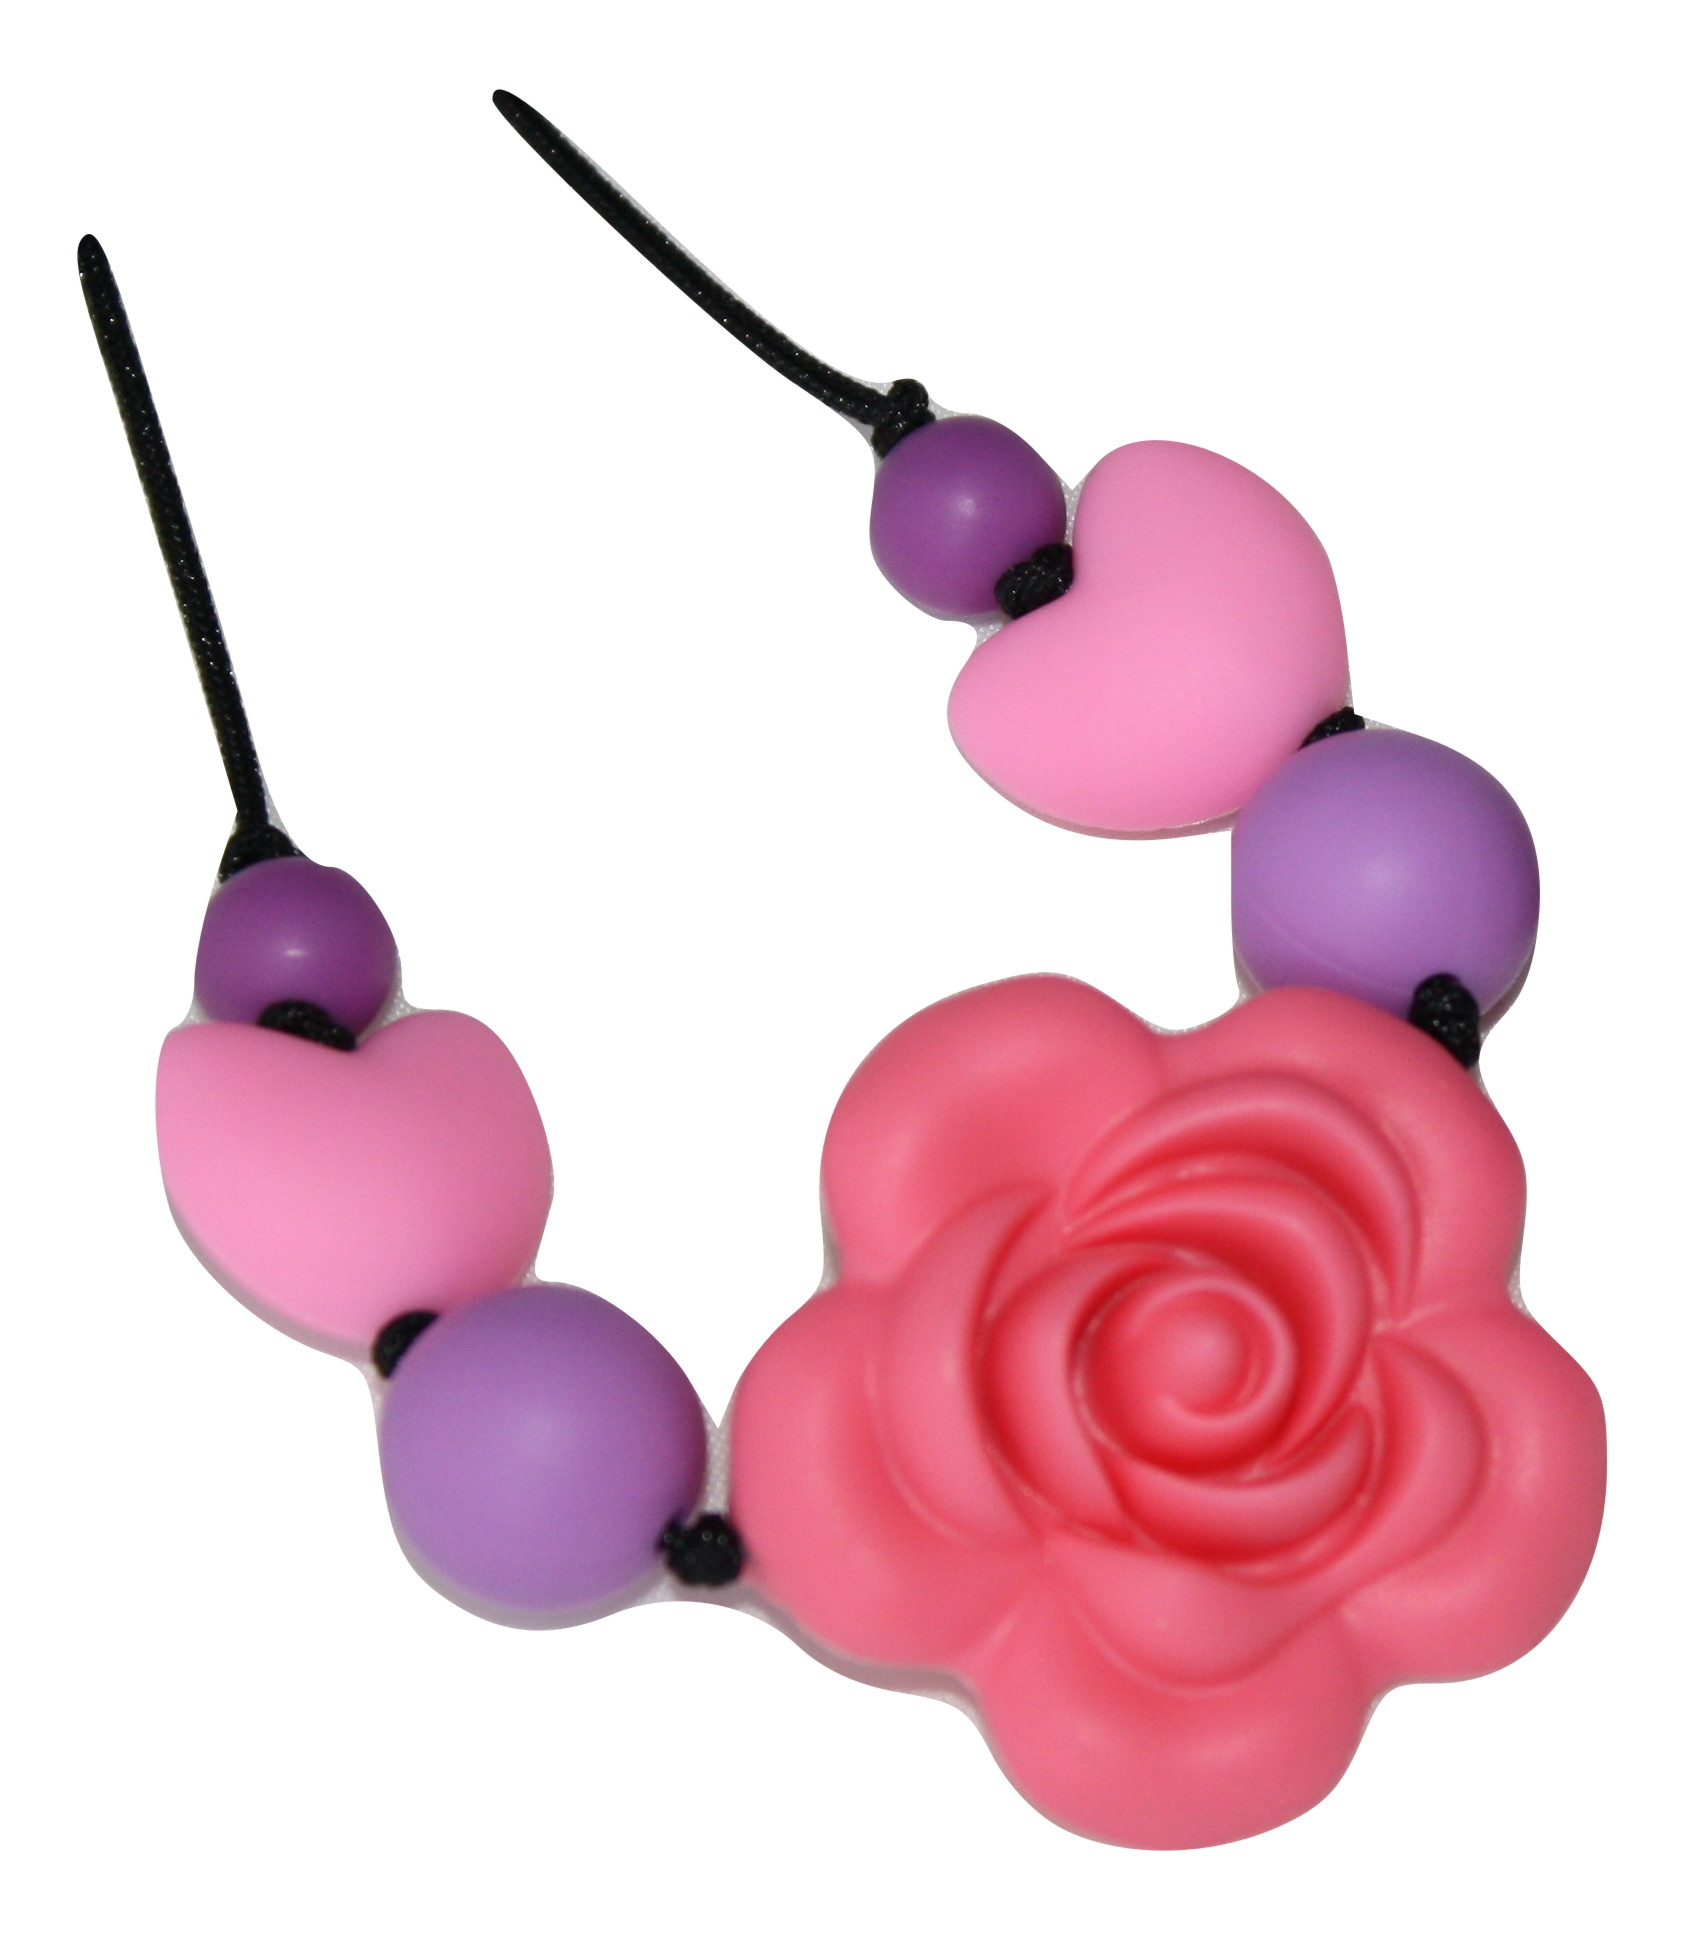 Baby Tapuu Silicone Sensory Necklaces are widely used by both